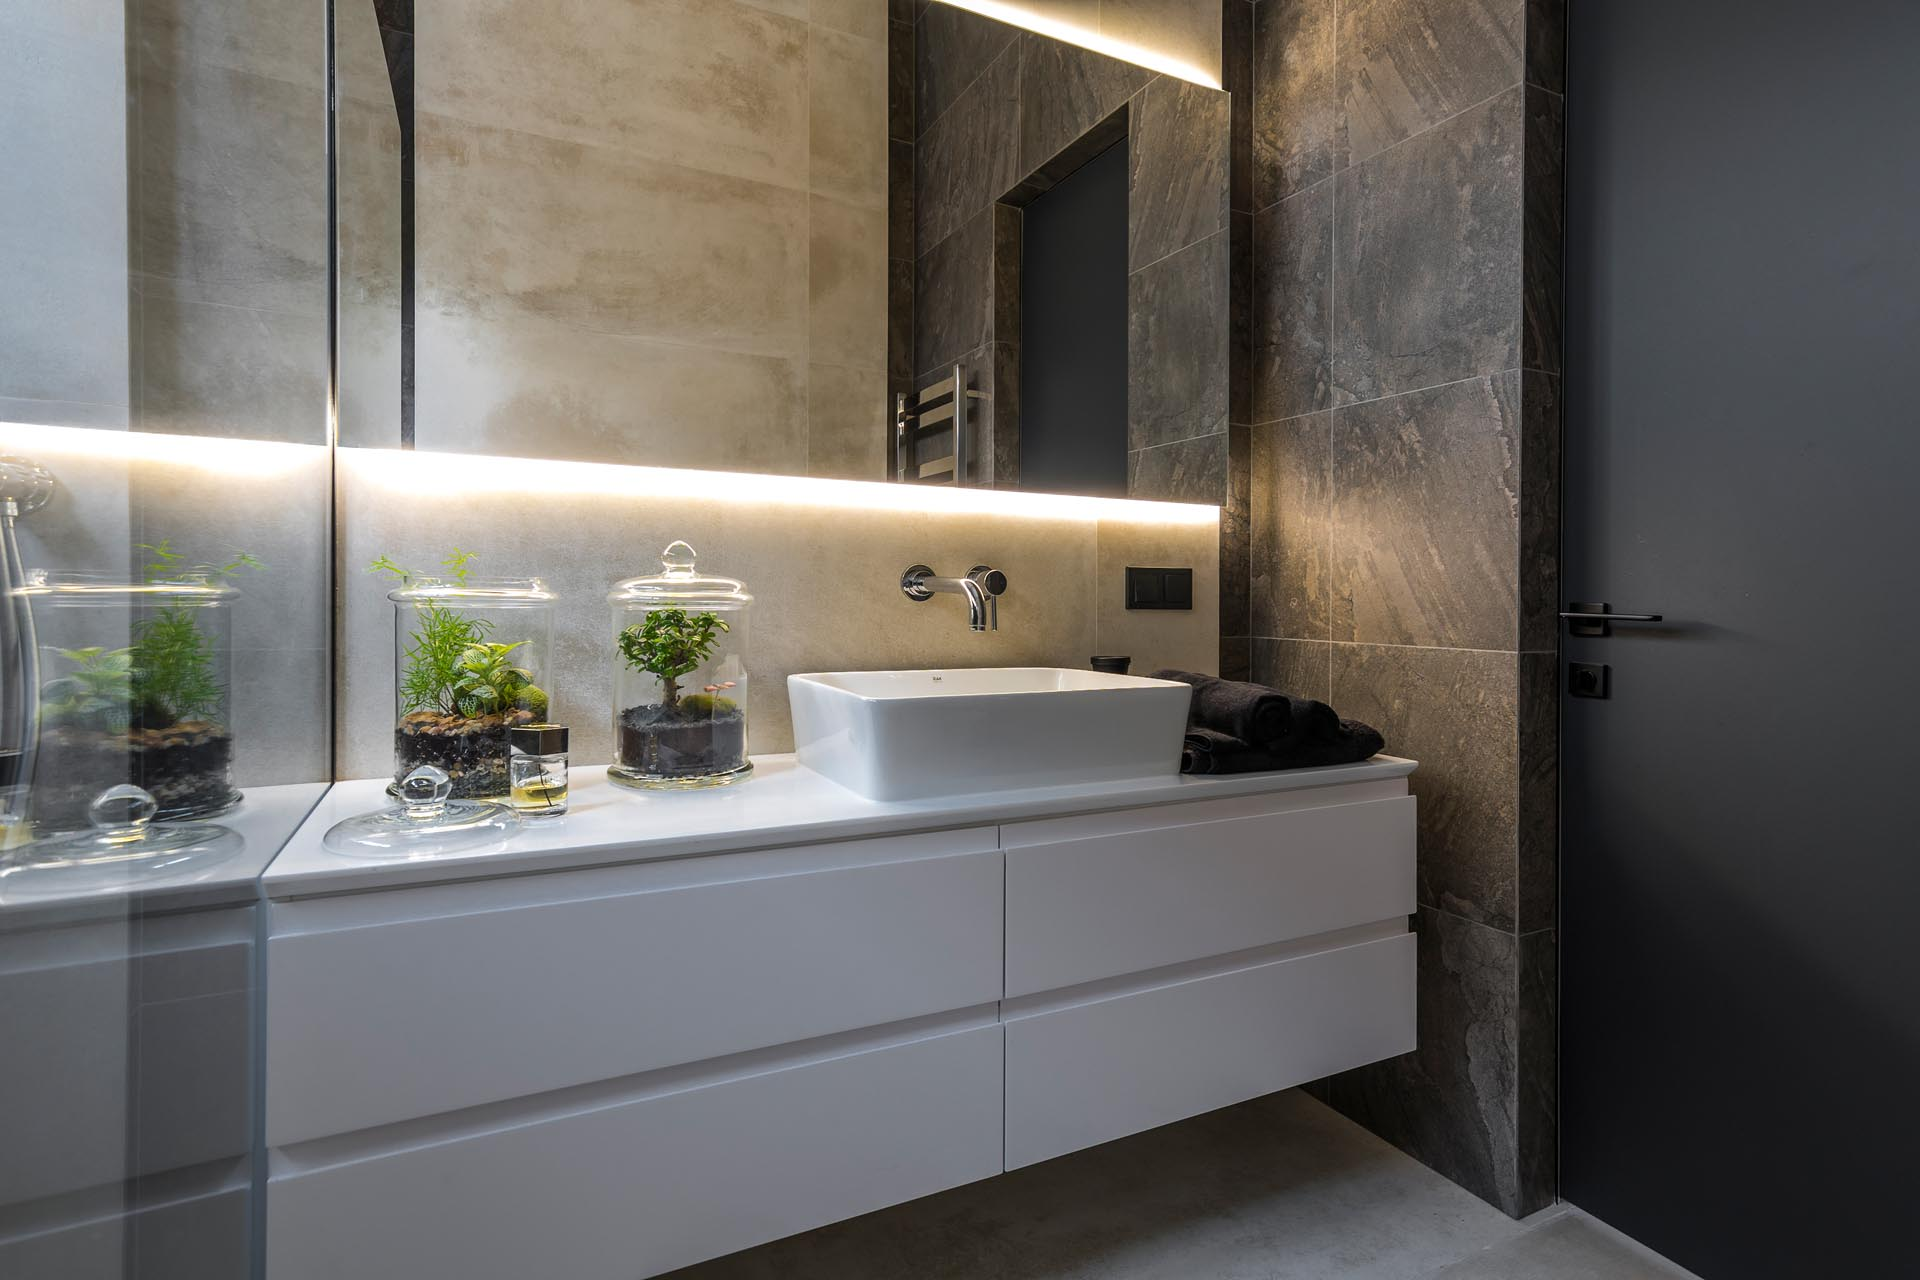 A modern bathroom with a white vanity and a backlit mirror.